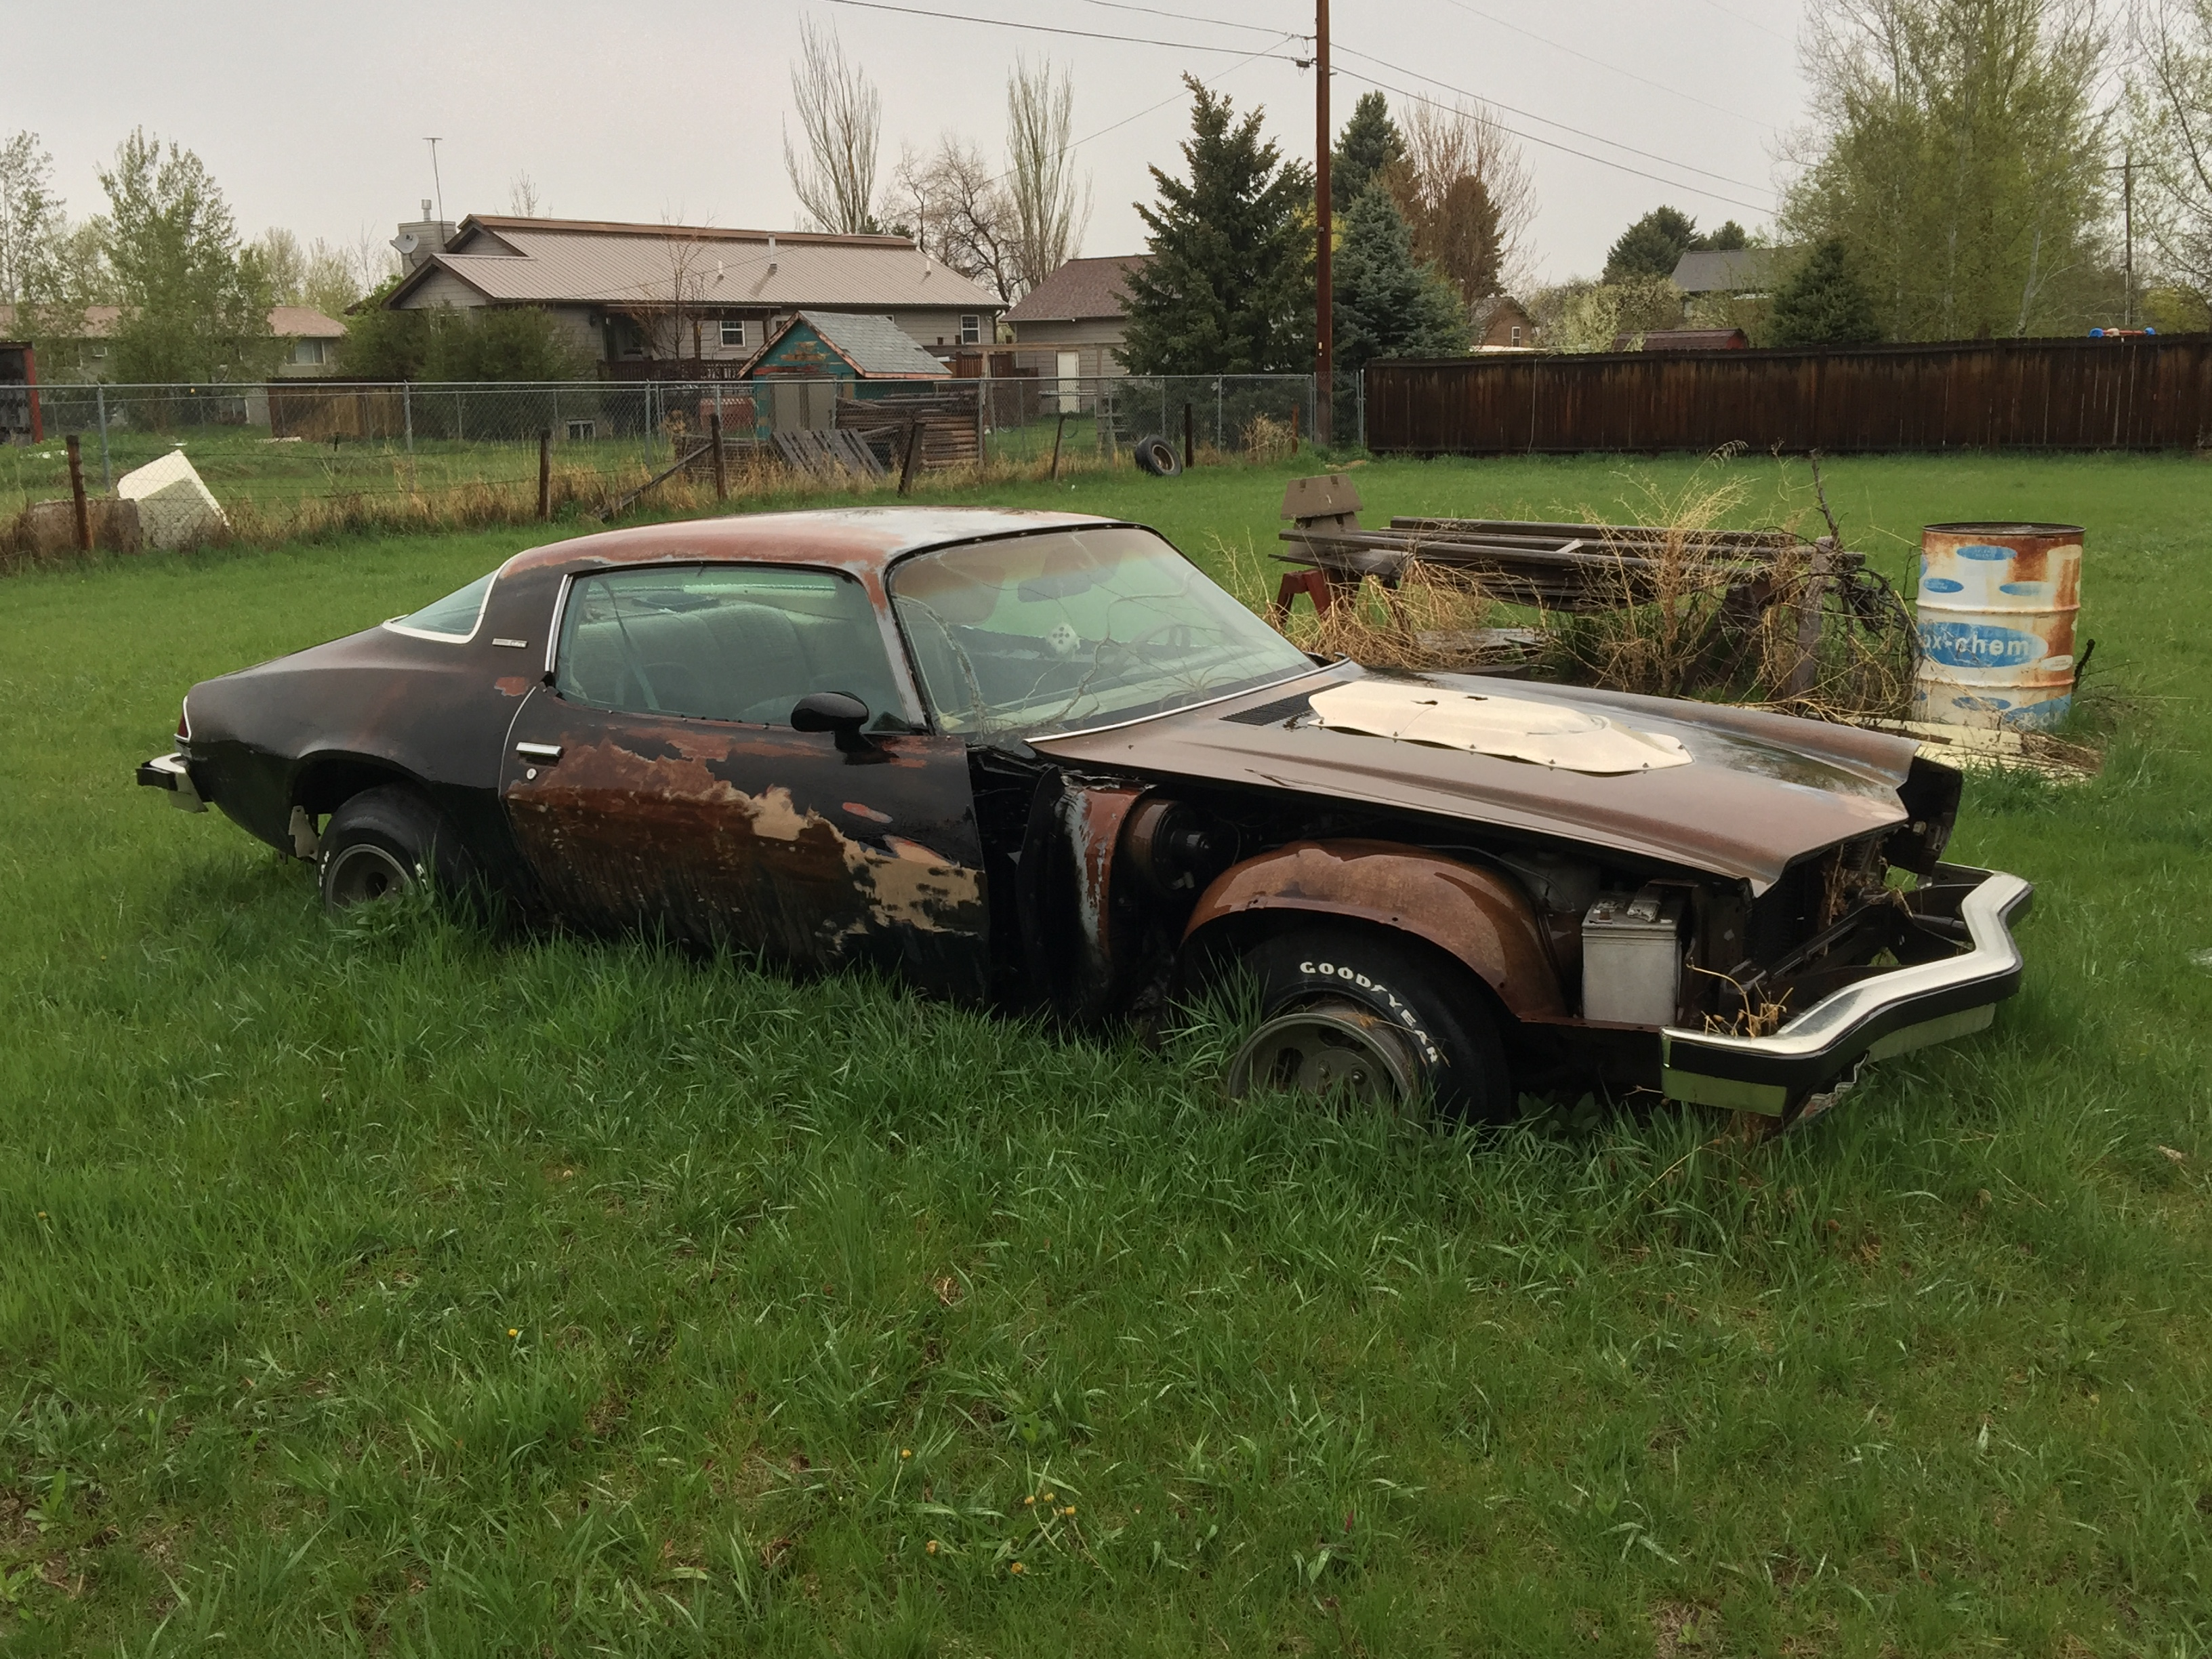 Cash for Cars Spanaway, WA | Sell Your Junk Car | The Clunker Junker